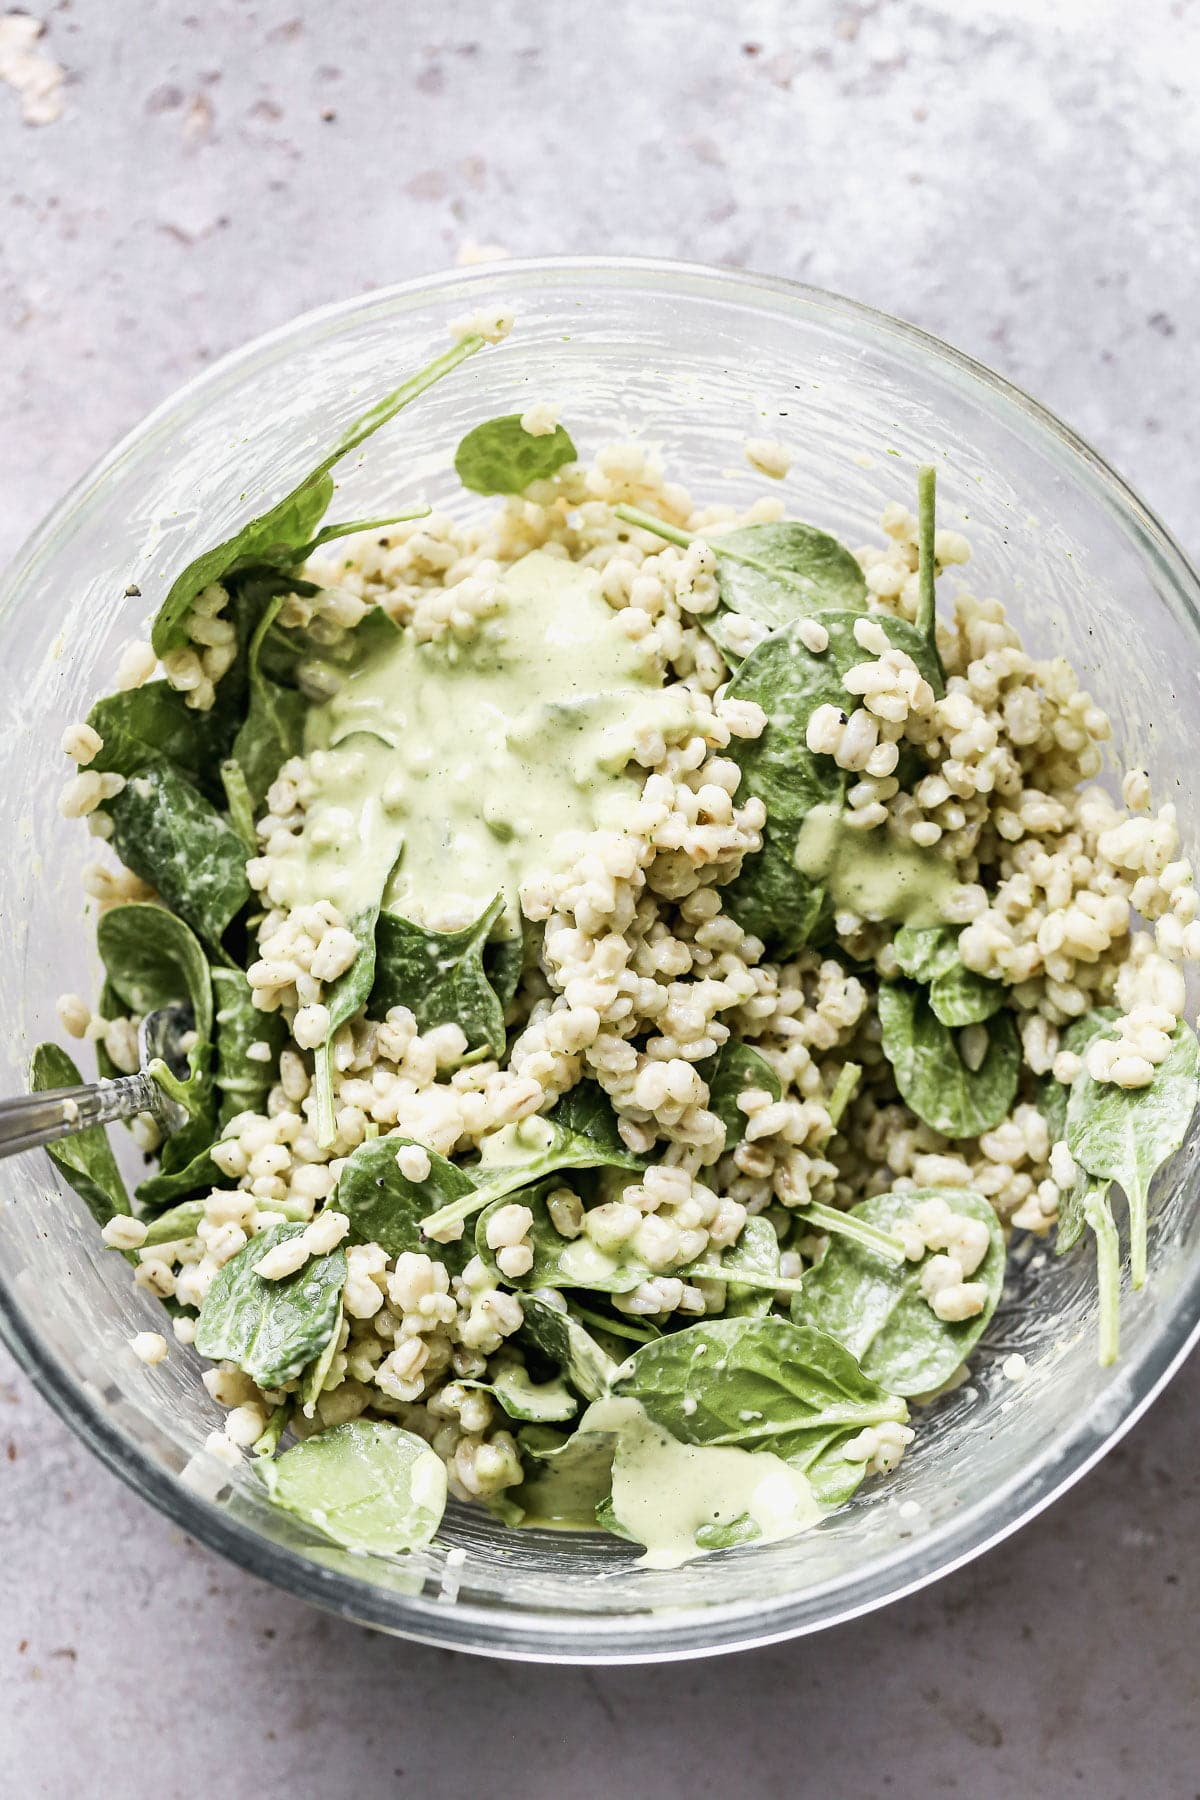 Barley tossed with green tahini and spinach